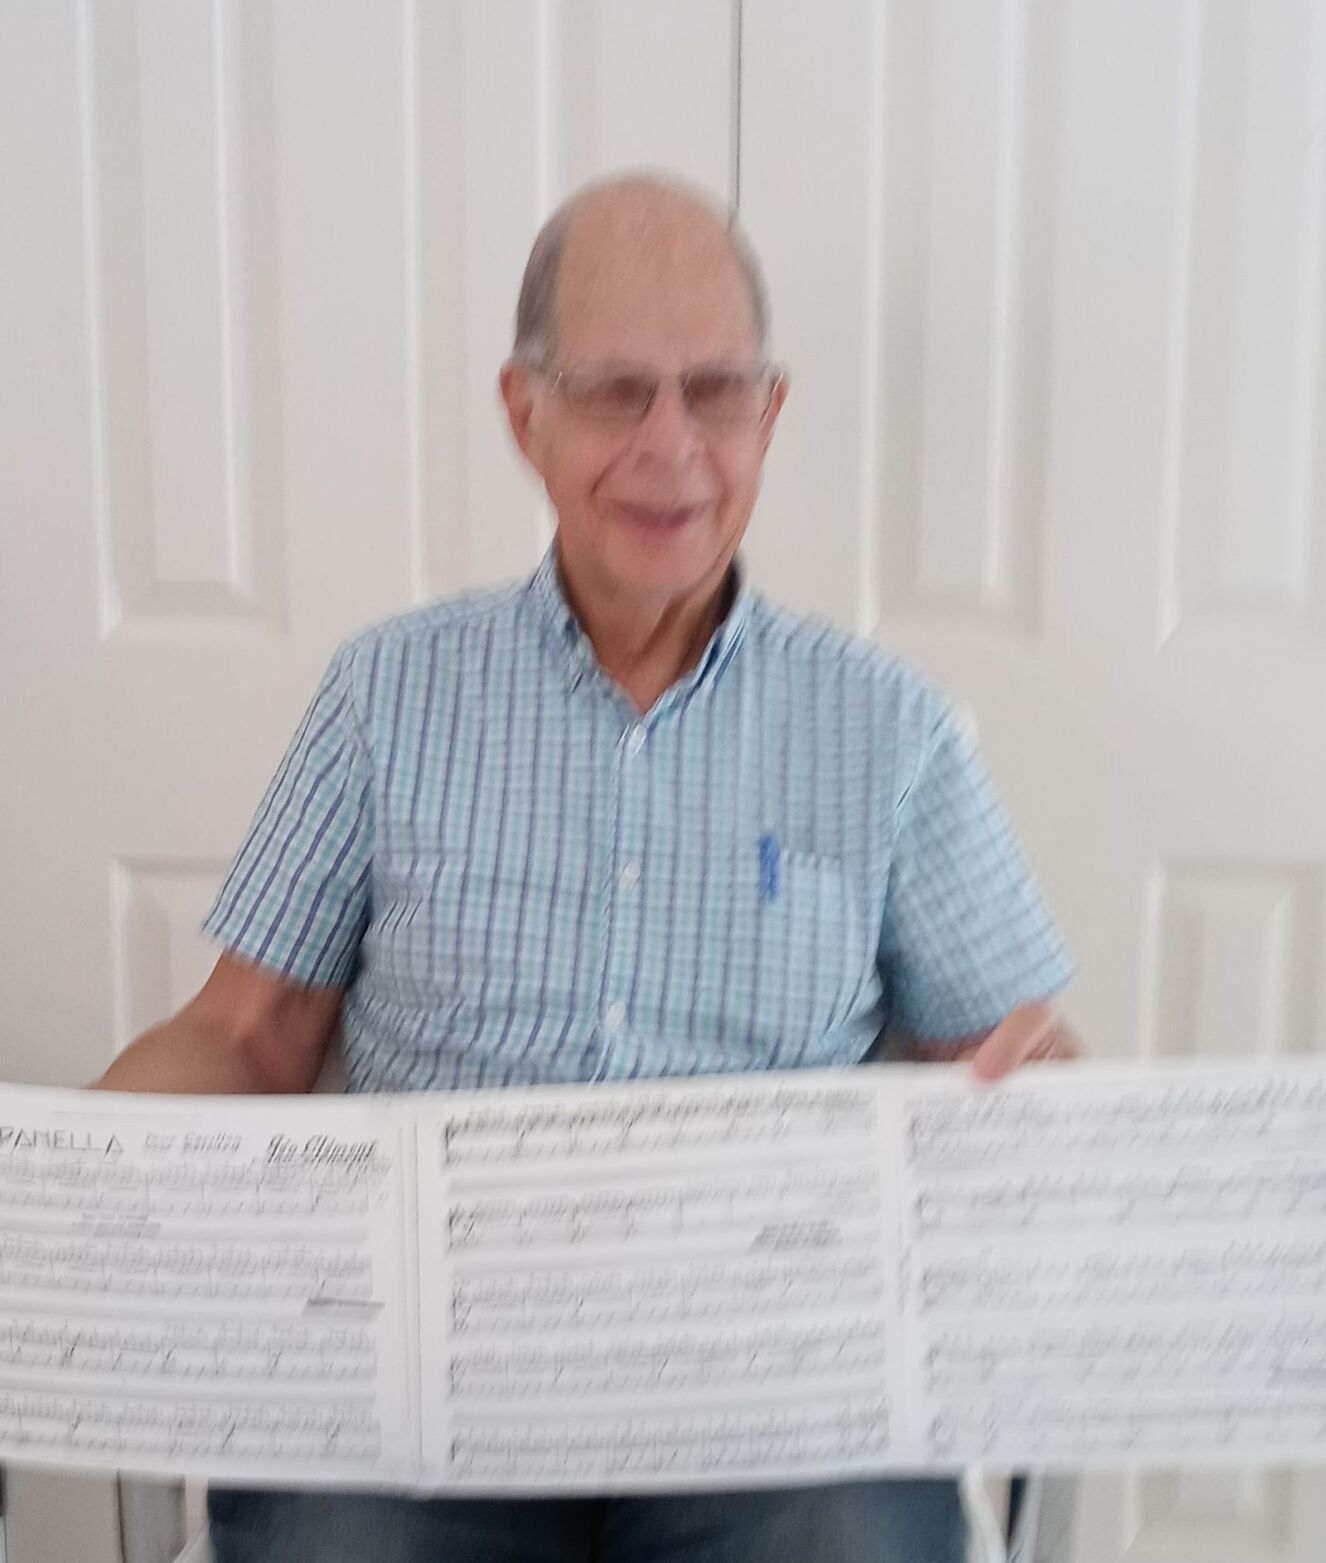 Carilloneur with his sheeet music